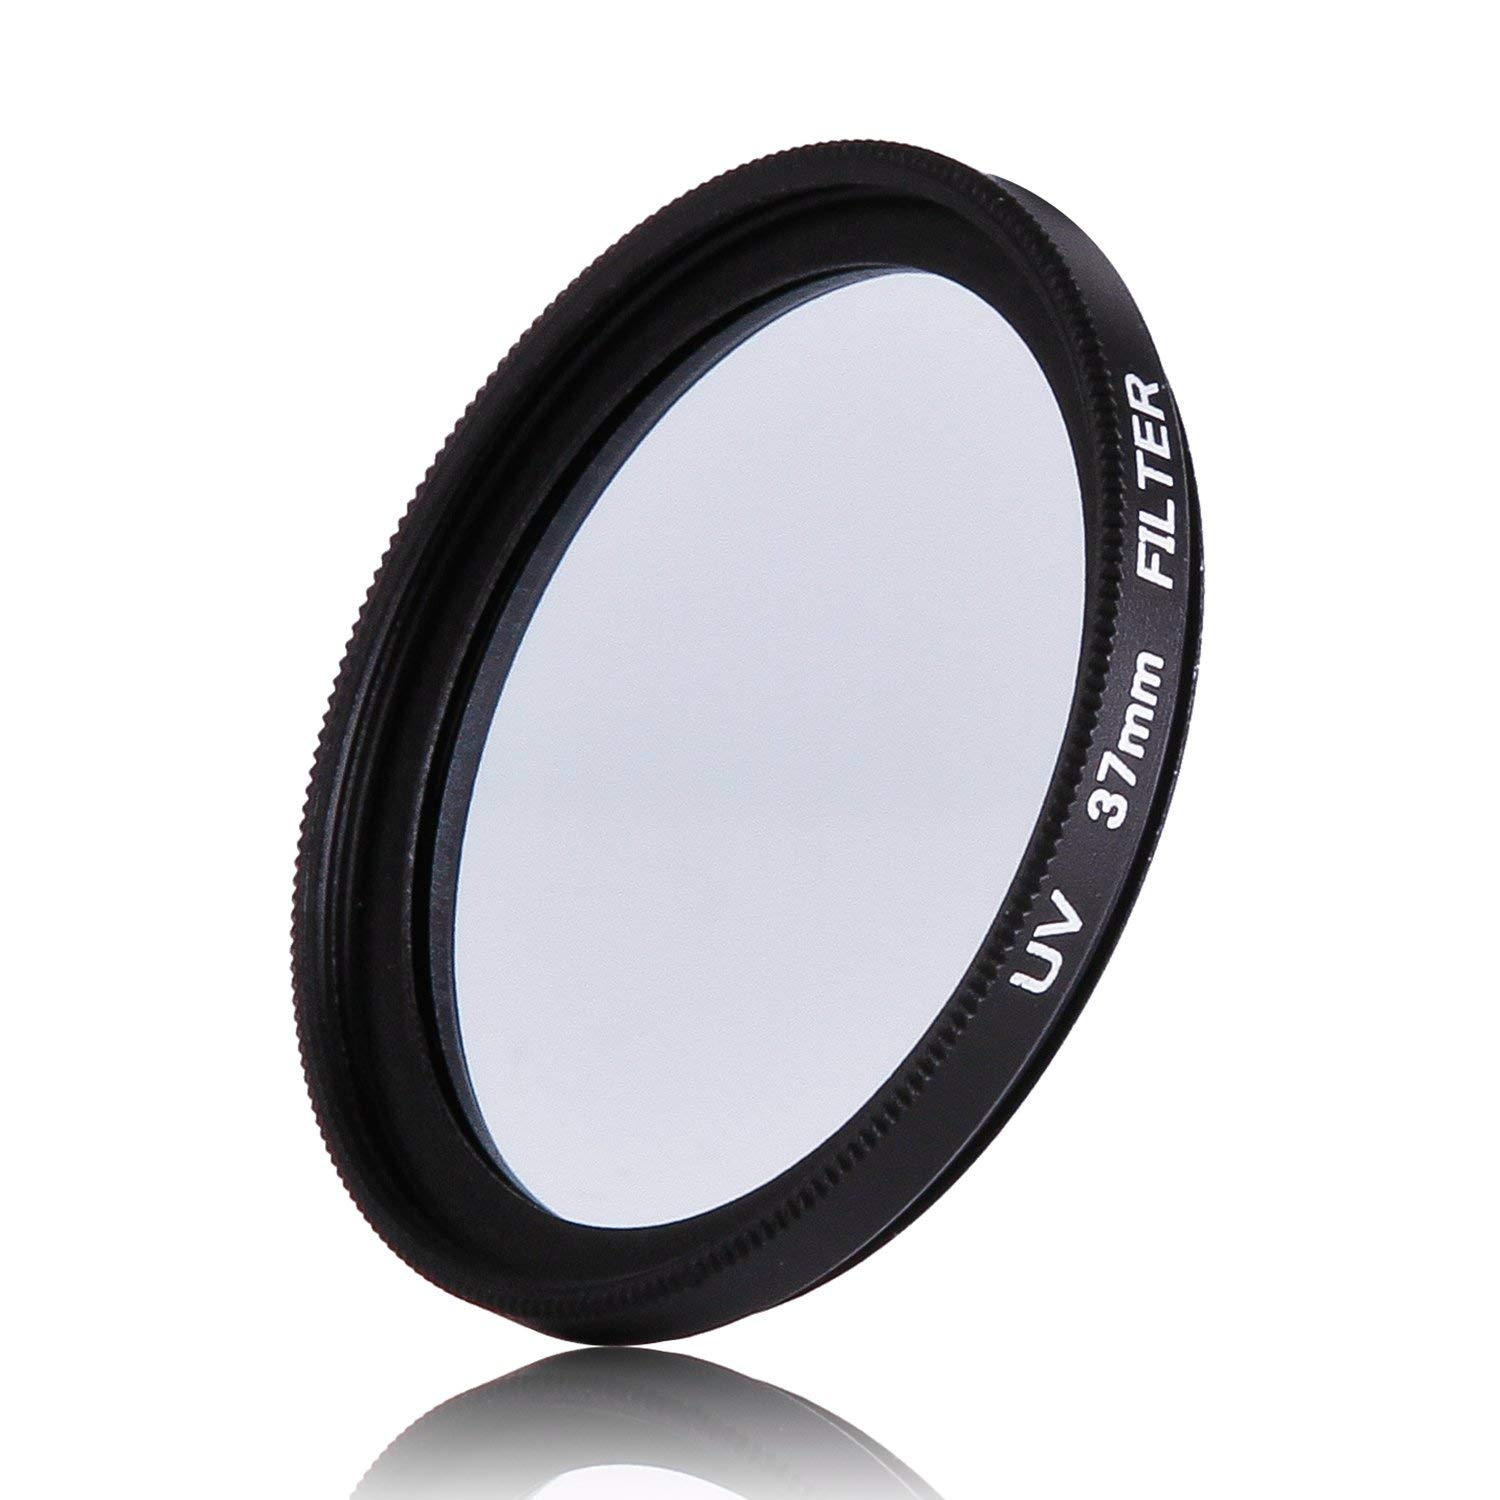 37mm 1pcs 25mm 25.5mm 27mm 28mm 30mm 30.5mm 34mm 37mm 39mm UV Lens Filter Lens Protector